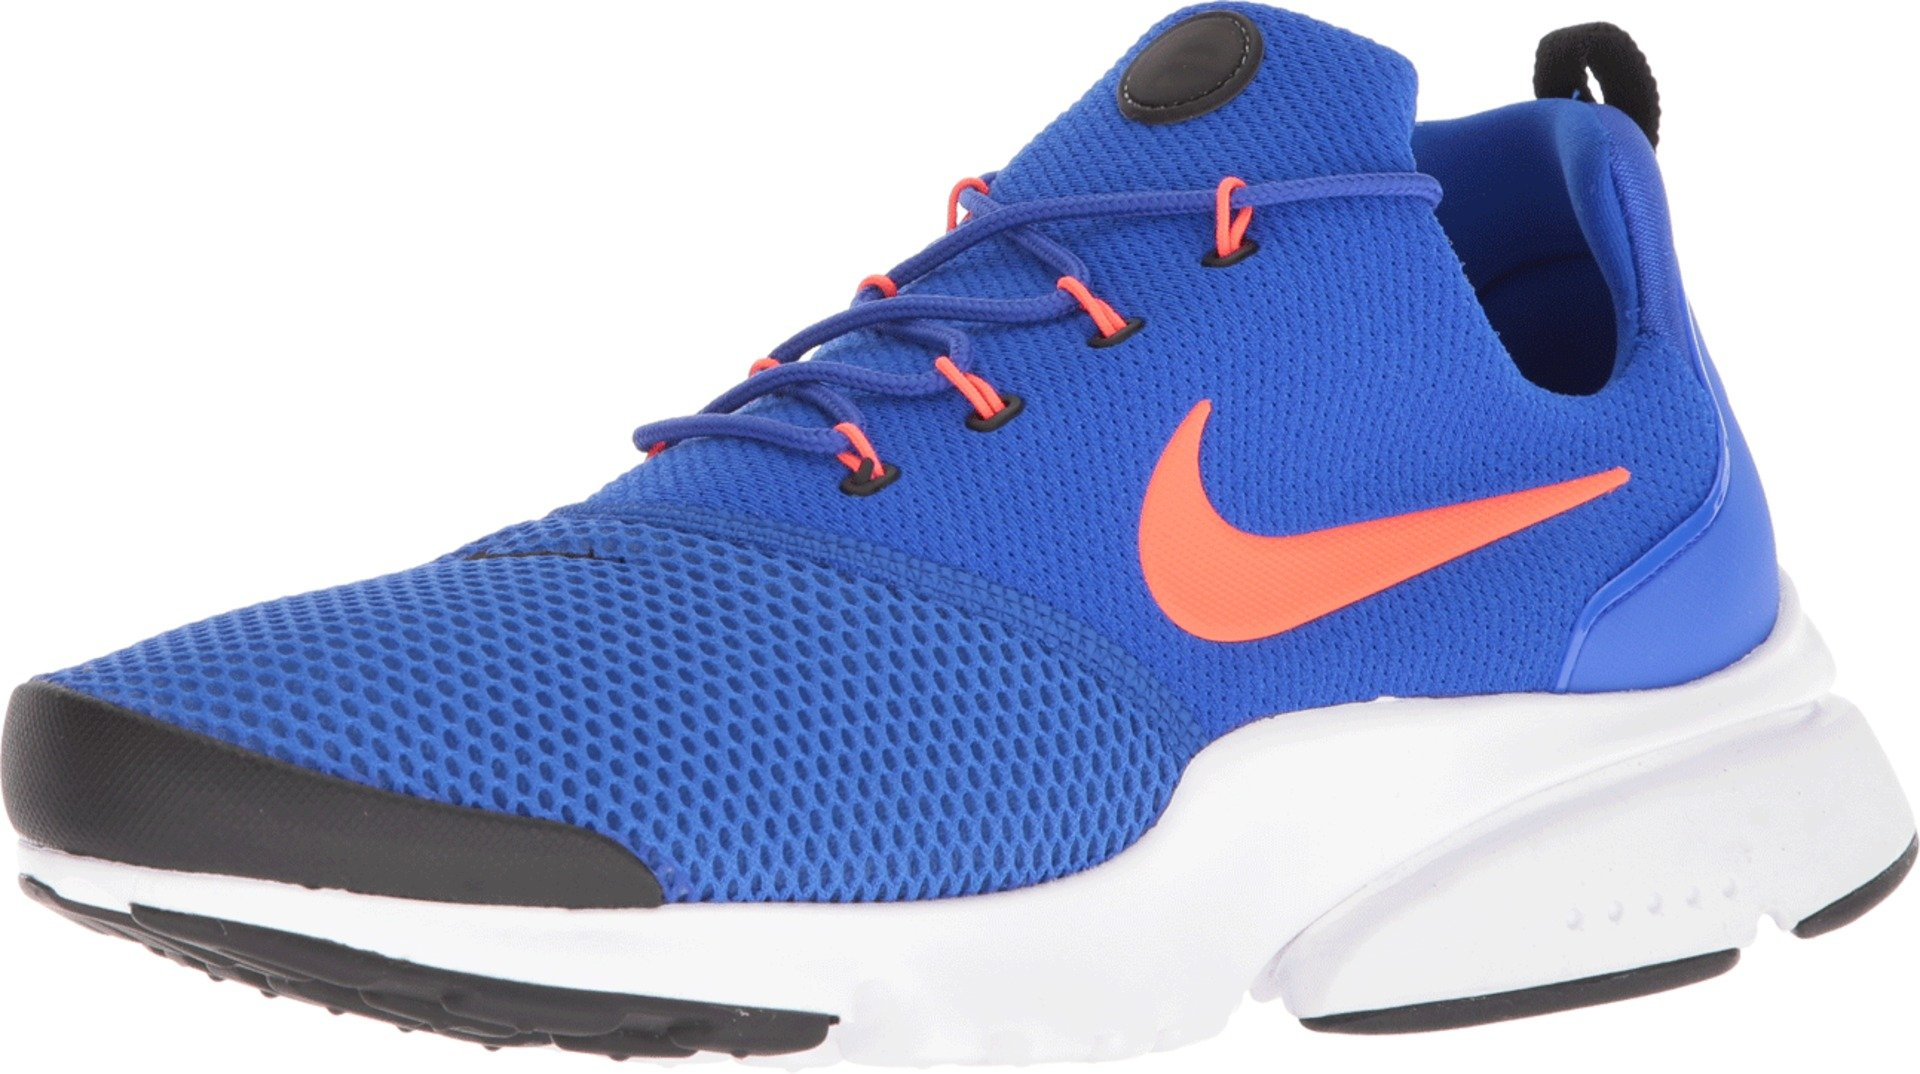 c8a89fa94e881 Nike Presto Fly Mens Running Trainers 908019 Sneakers Shoes (UK 6 US 7 EU  40, Racer Blue Total Crimson 405)